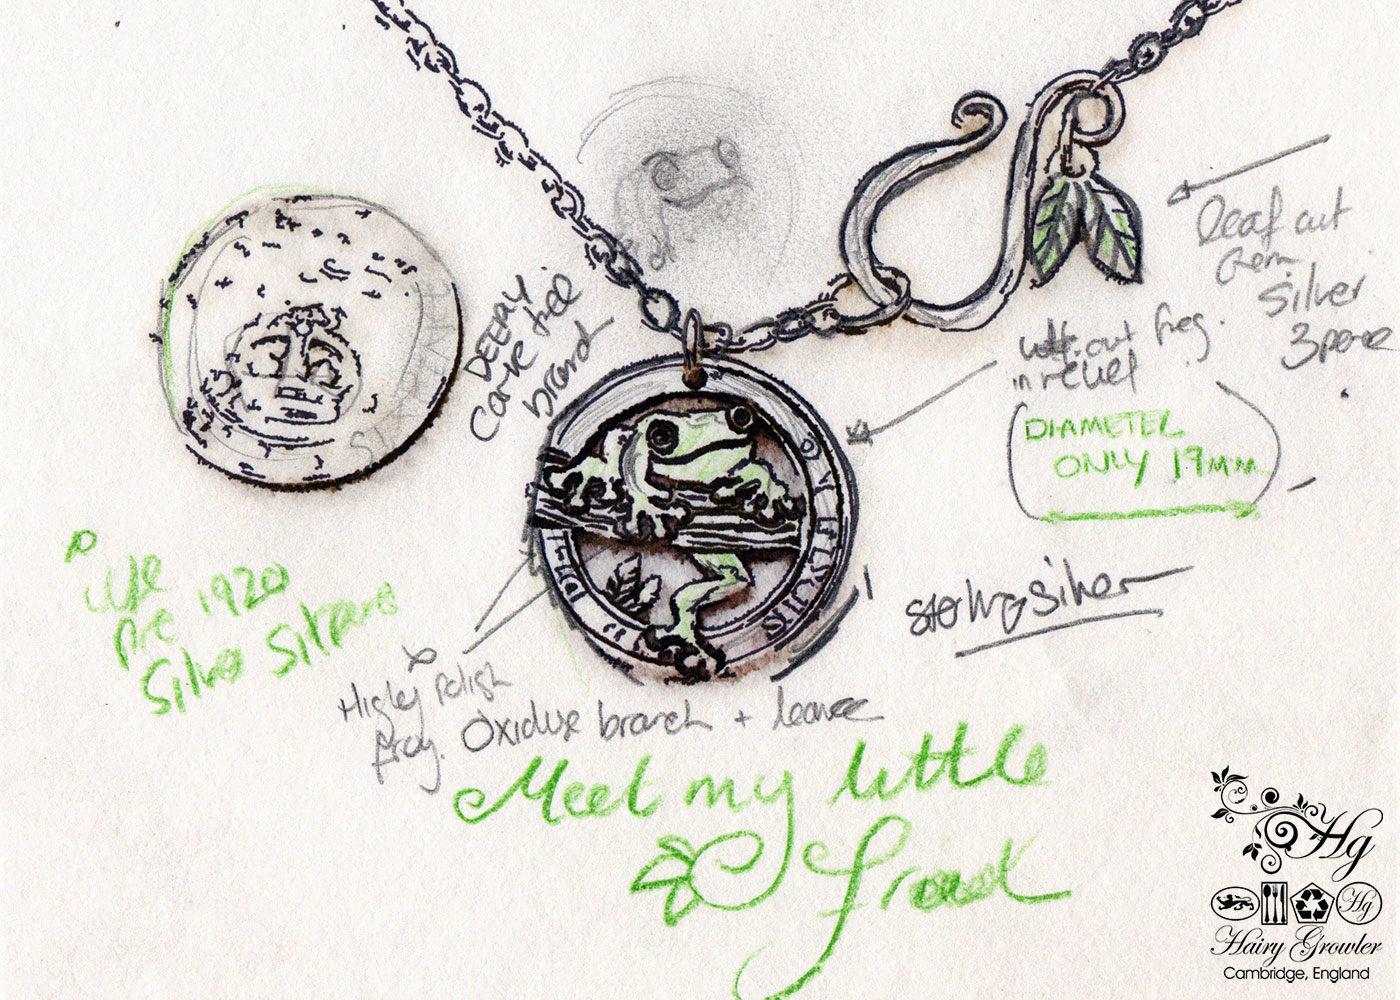 Hand crafted and repurposed silver sixpence coin frog pendant necklace